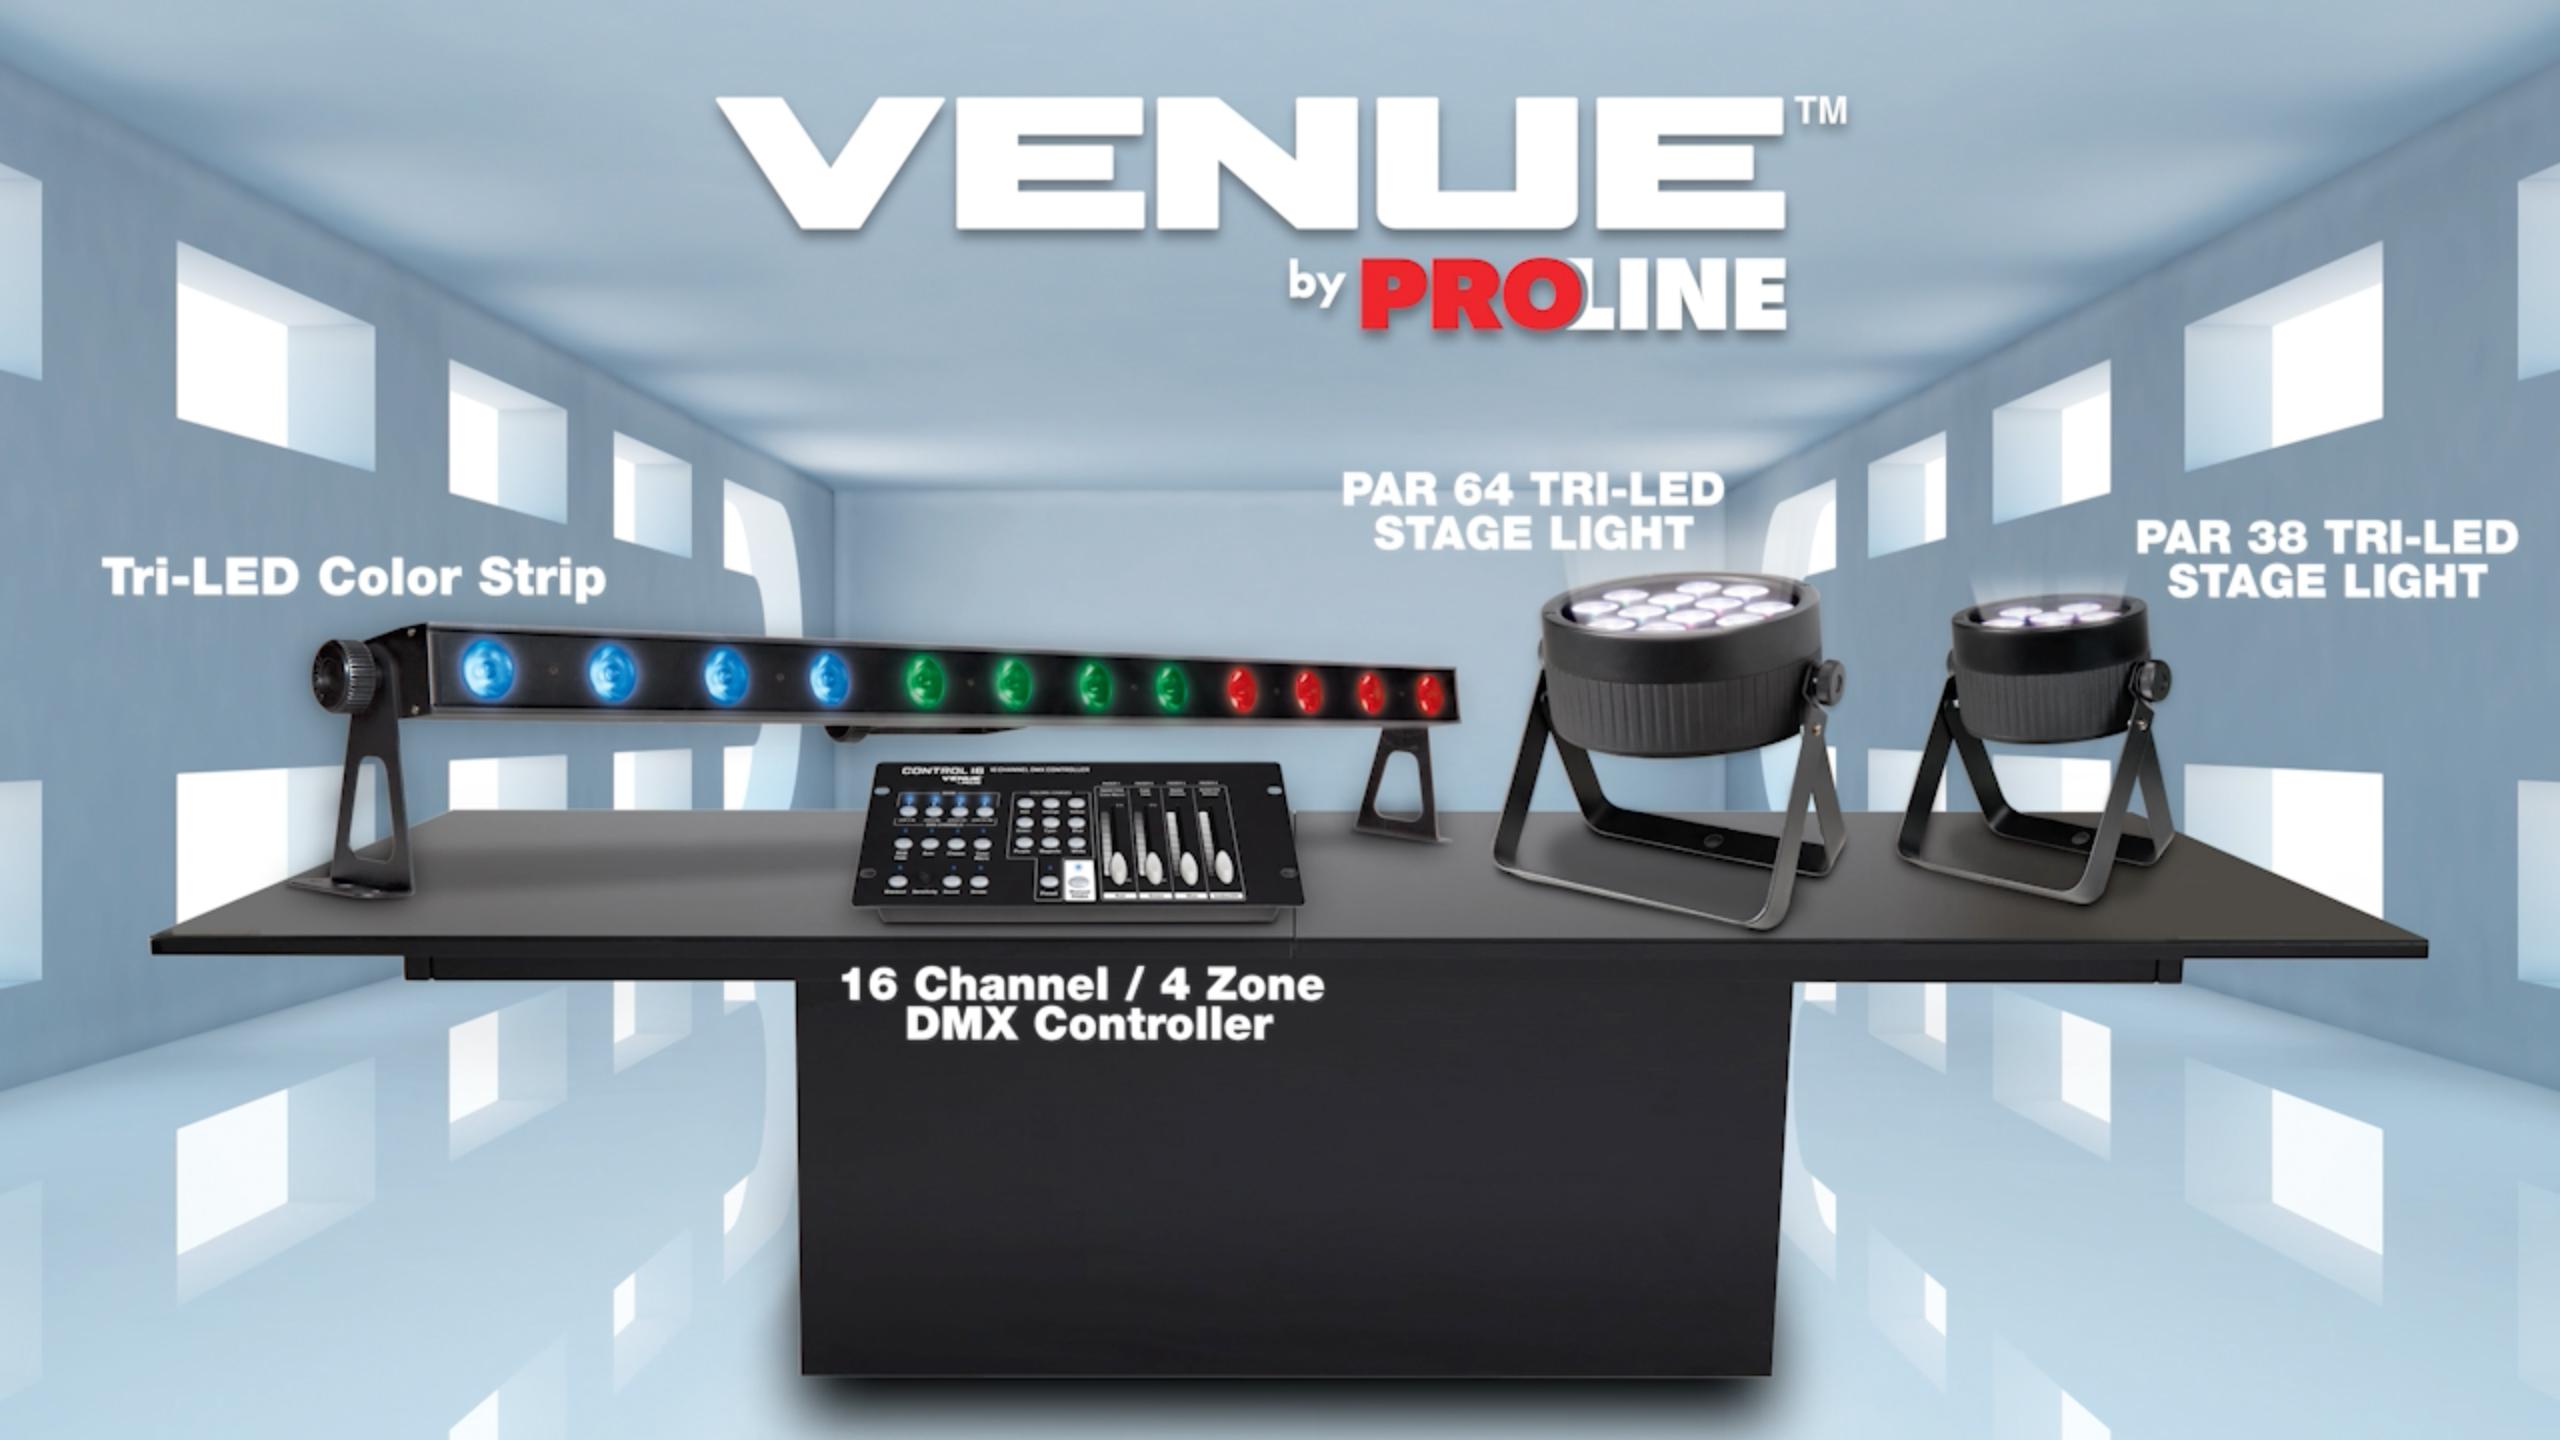 Venue Lighting Effects by Proline